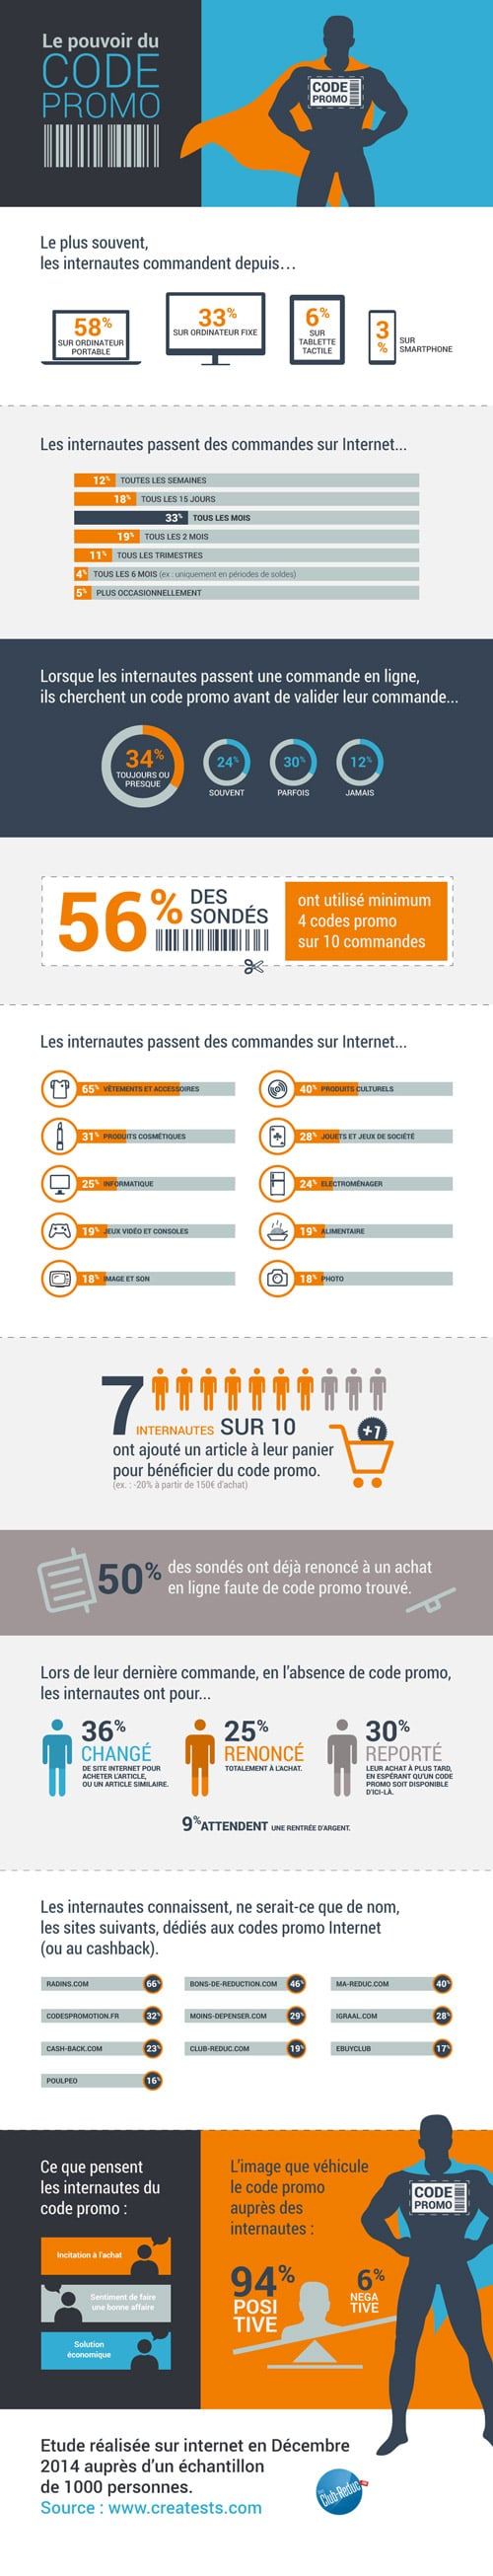 infographie code promo club reduc